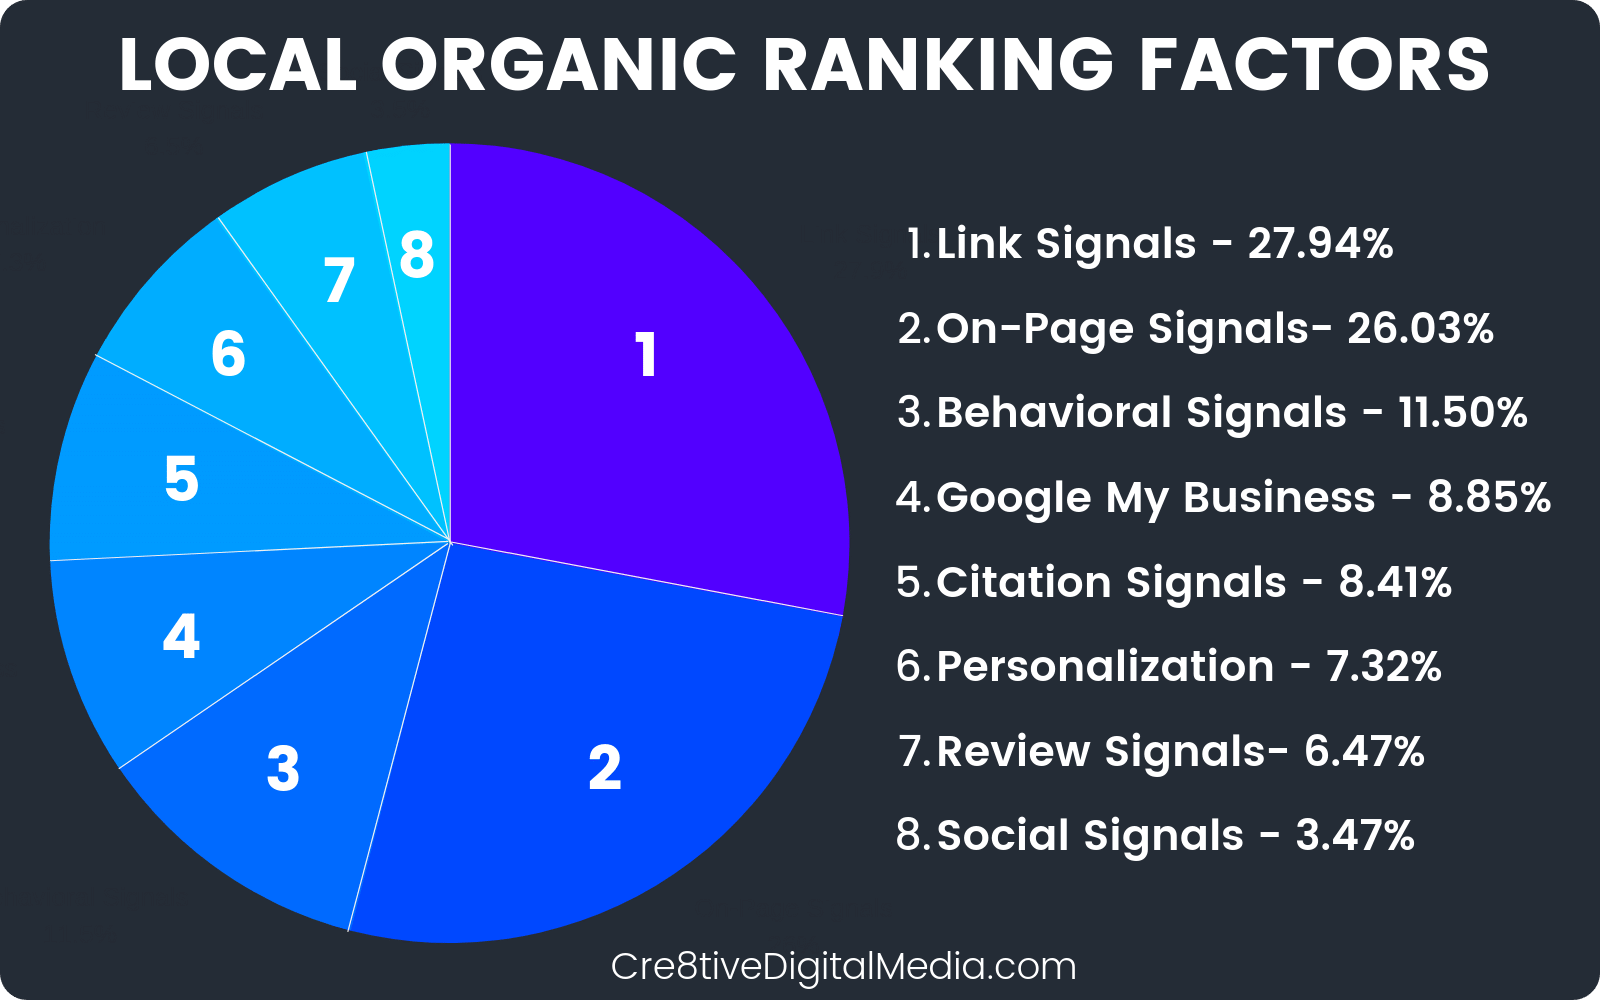 Local Organic Ranking Factors